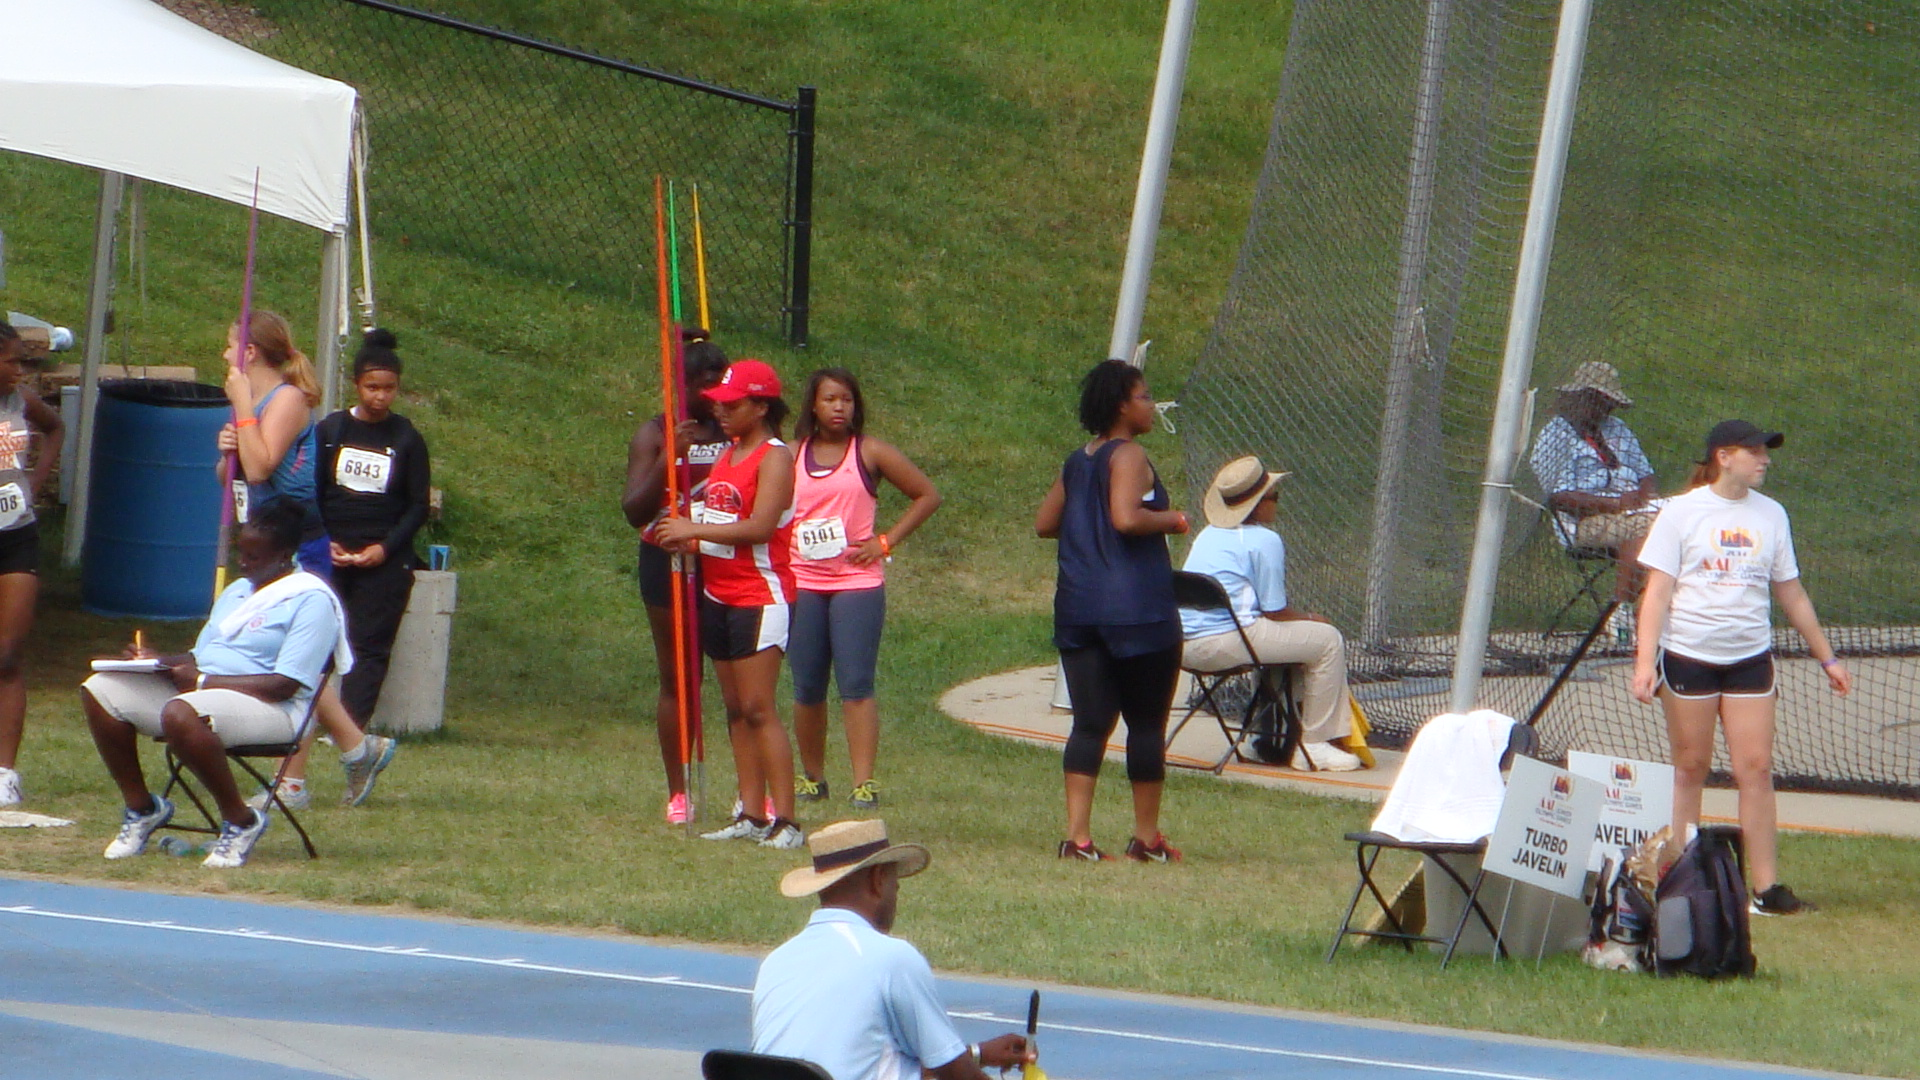 Maurisa awaiting her turn at the javelin